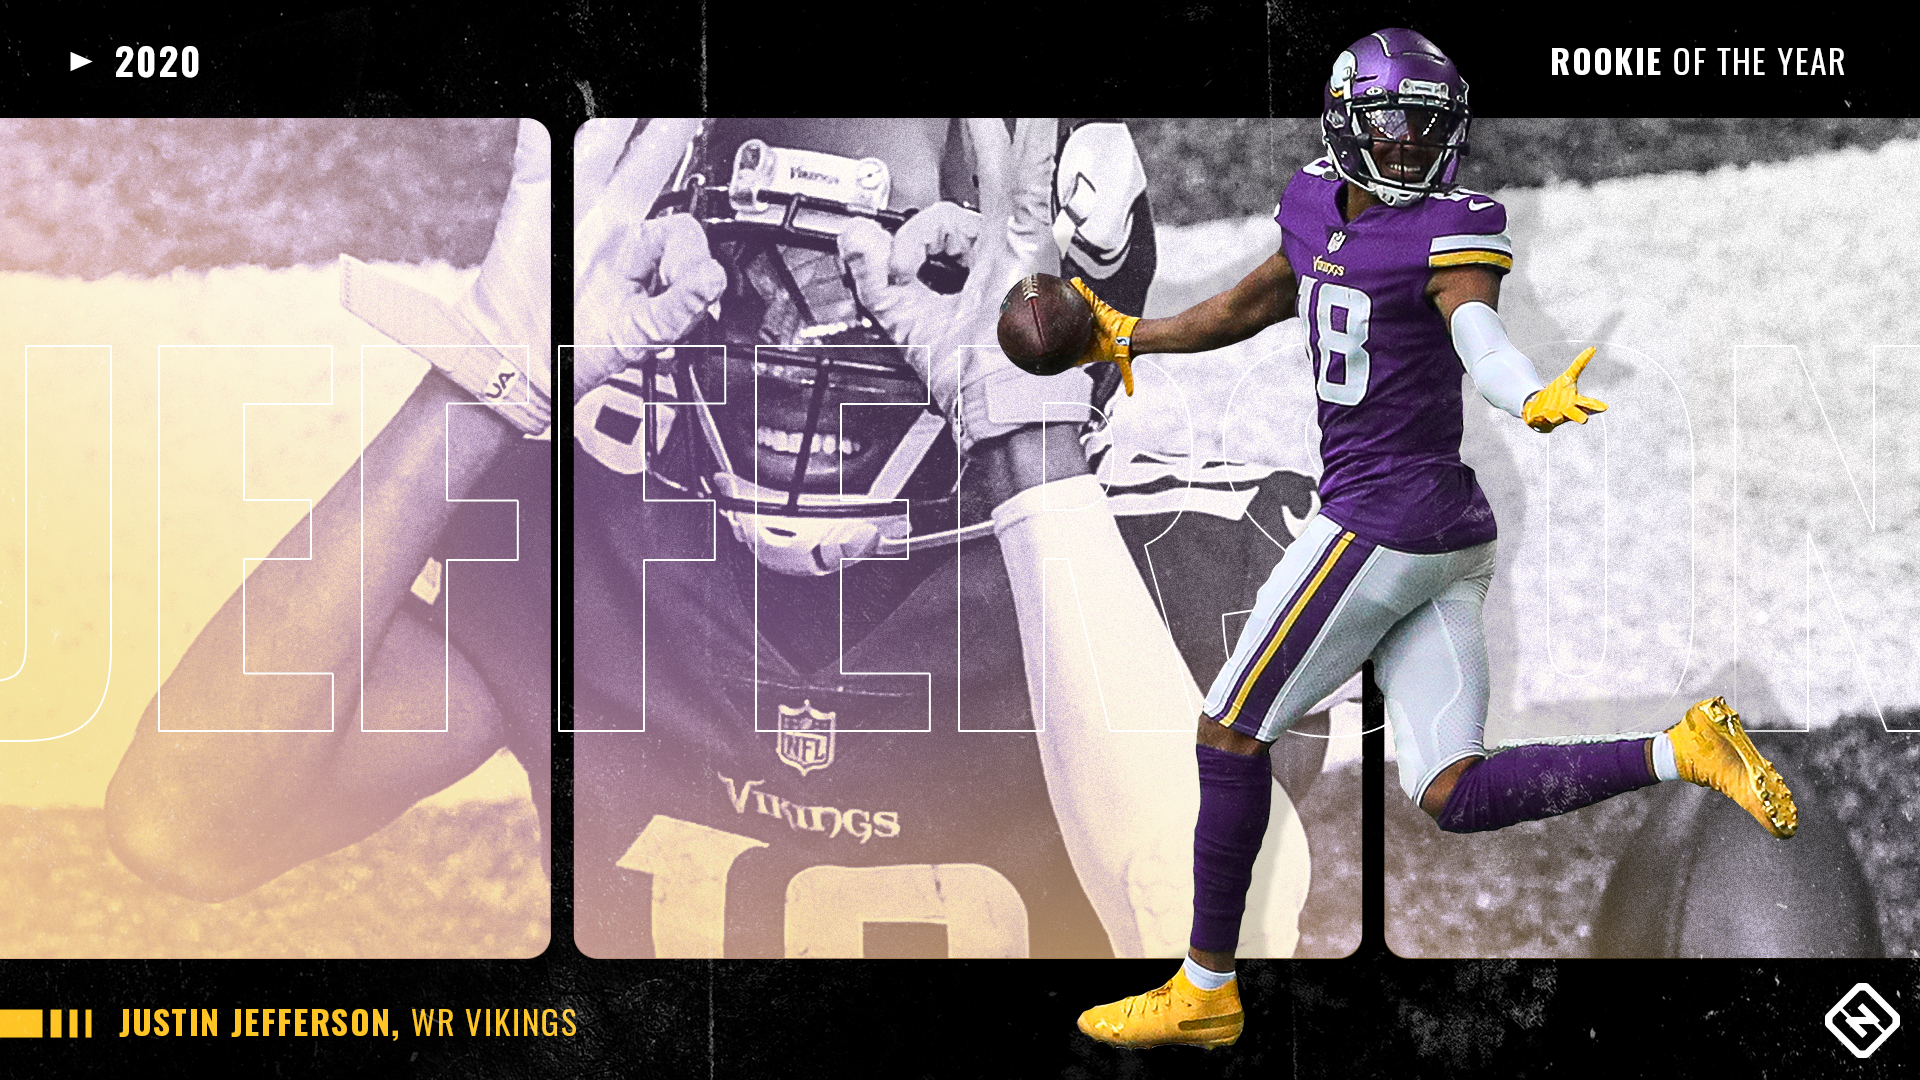 Justin Jefferson vs. Randy Moss: Comparing the Vikings' Sporting News NFL Rookie of the Year winners